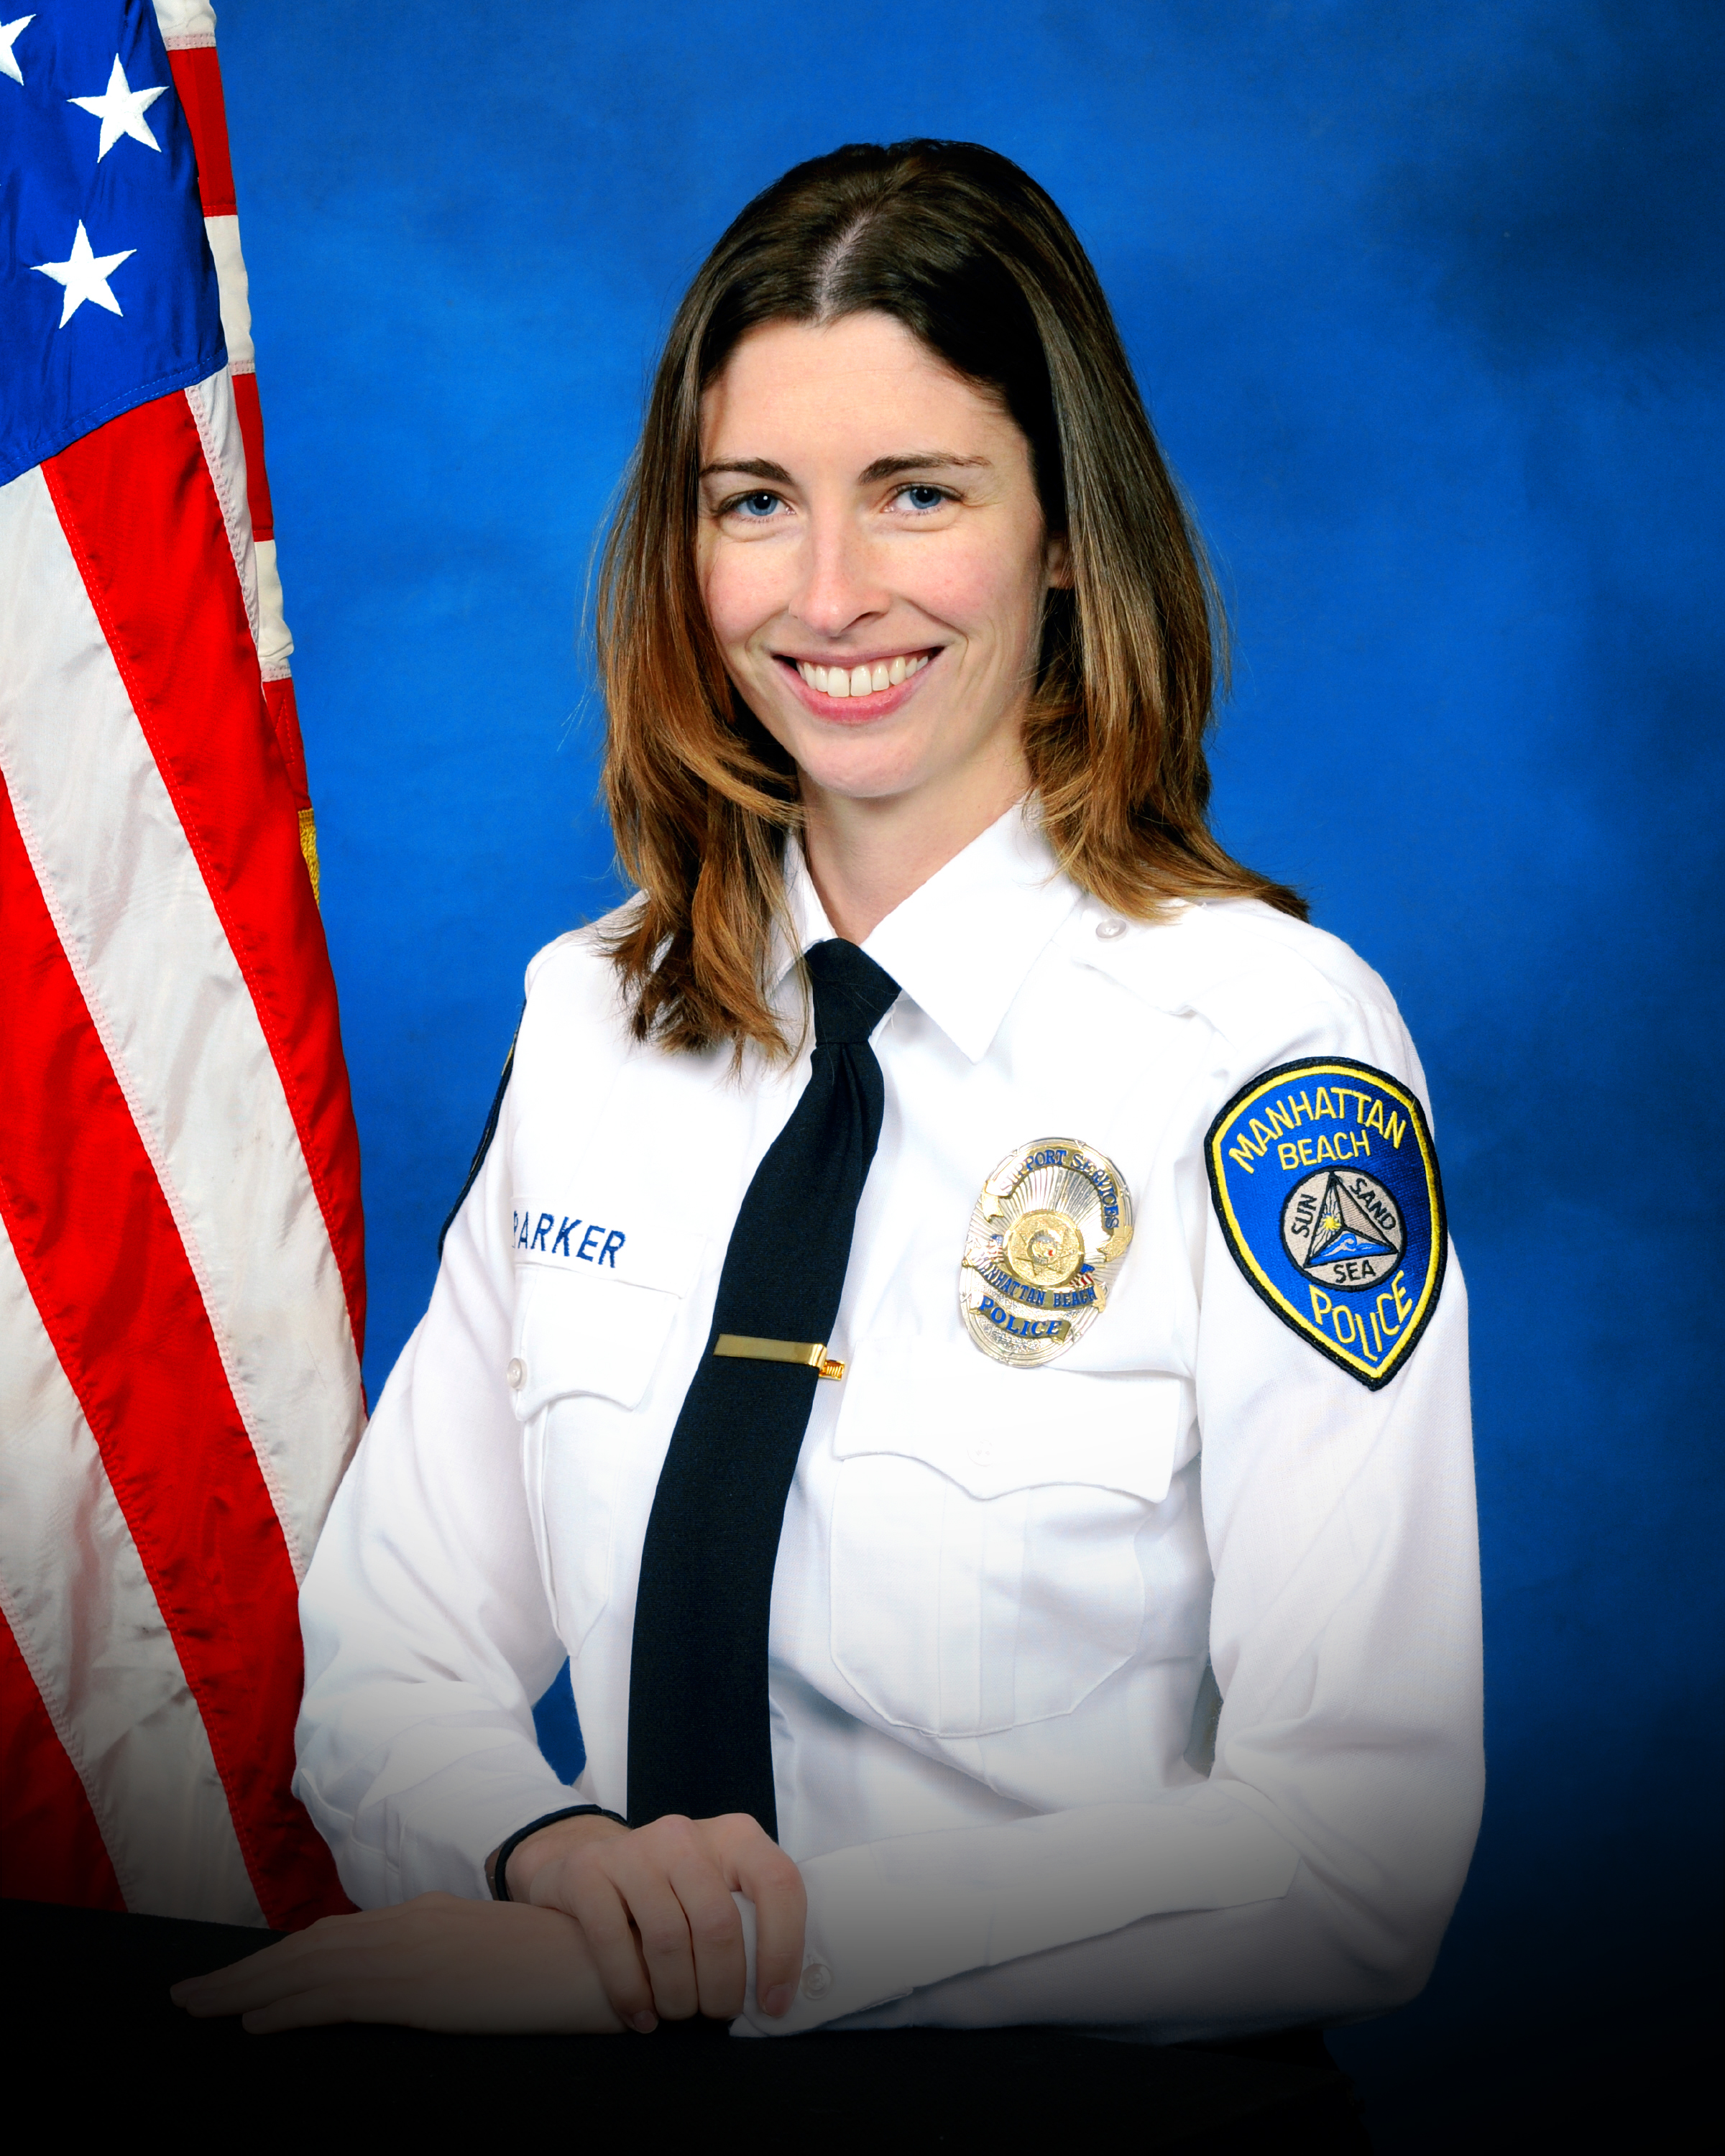 Rachael Parker, an employee of the Manhattan Beach Police Department.